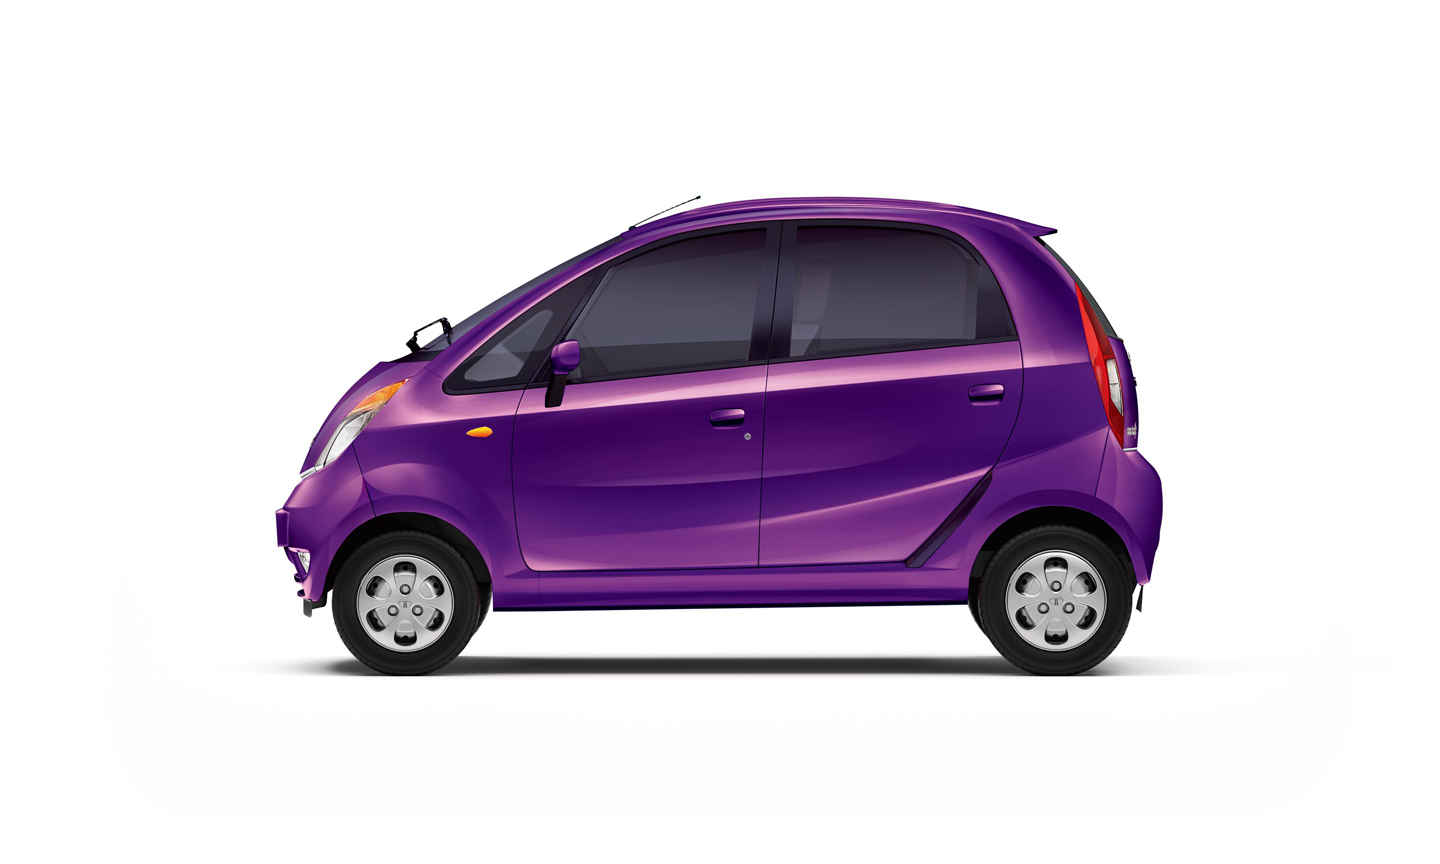 Tata-Nano-Twist-Pics-side